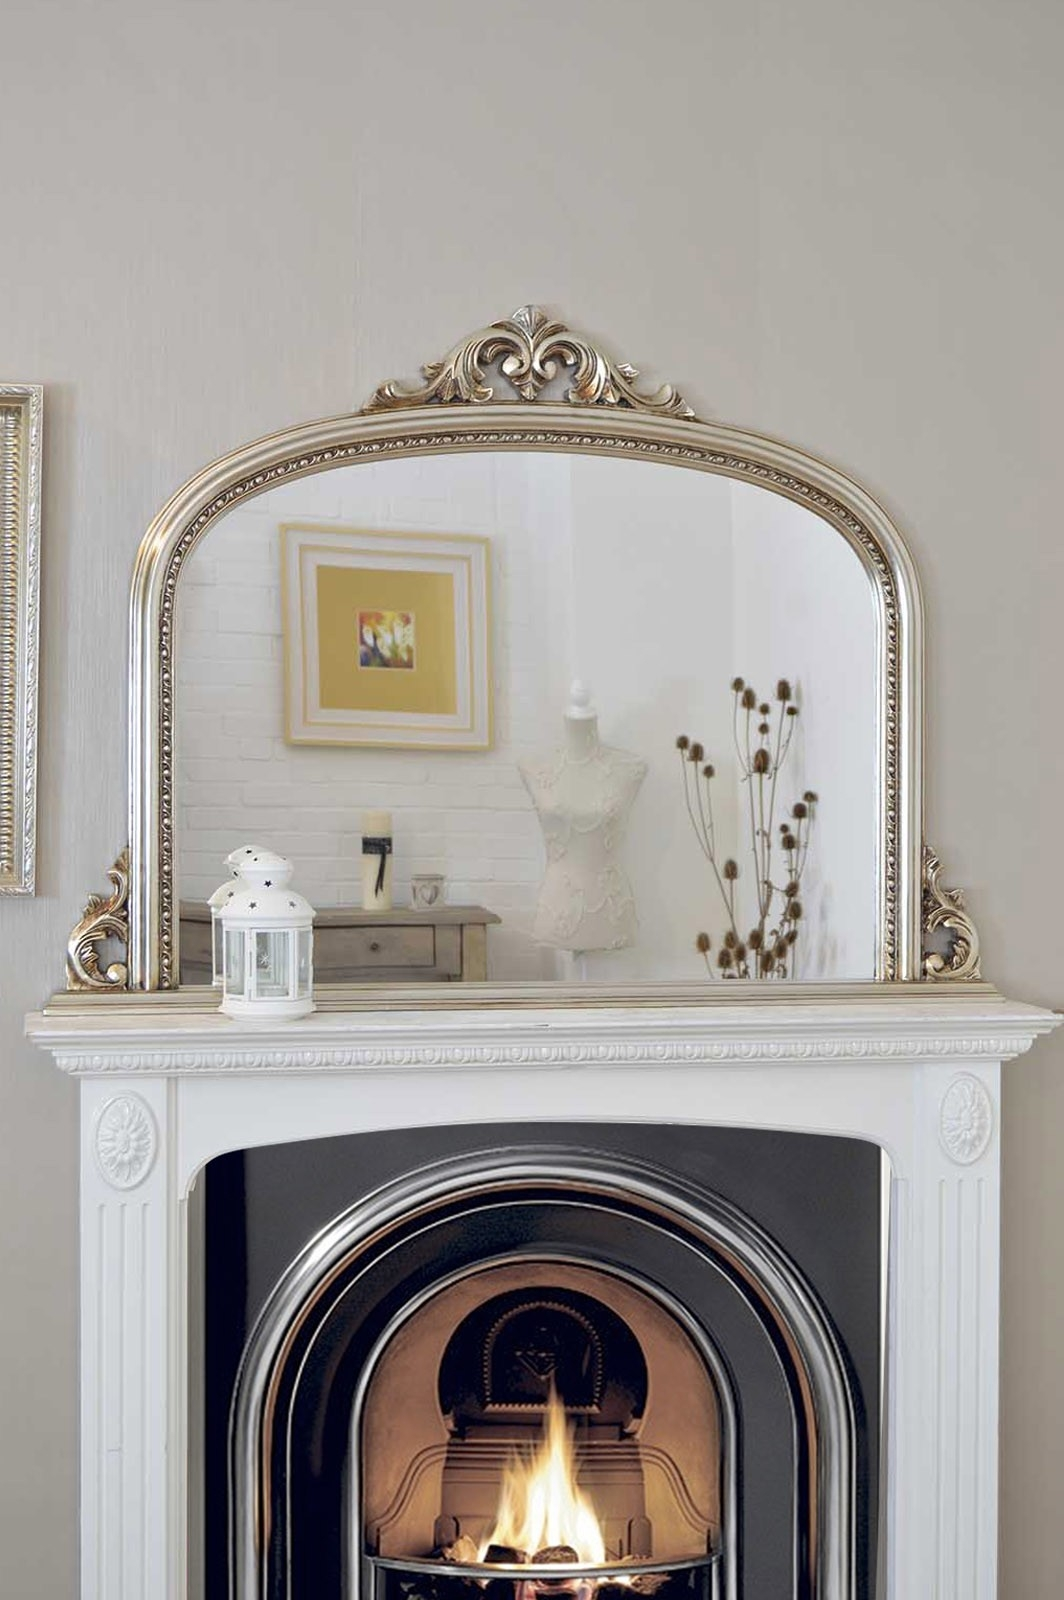 4ft2 X 3ft 120cm X 90cm Large Silver Antique Design Over Mantle With Mantlepiece Mirrors (Image 2 of 15)